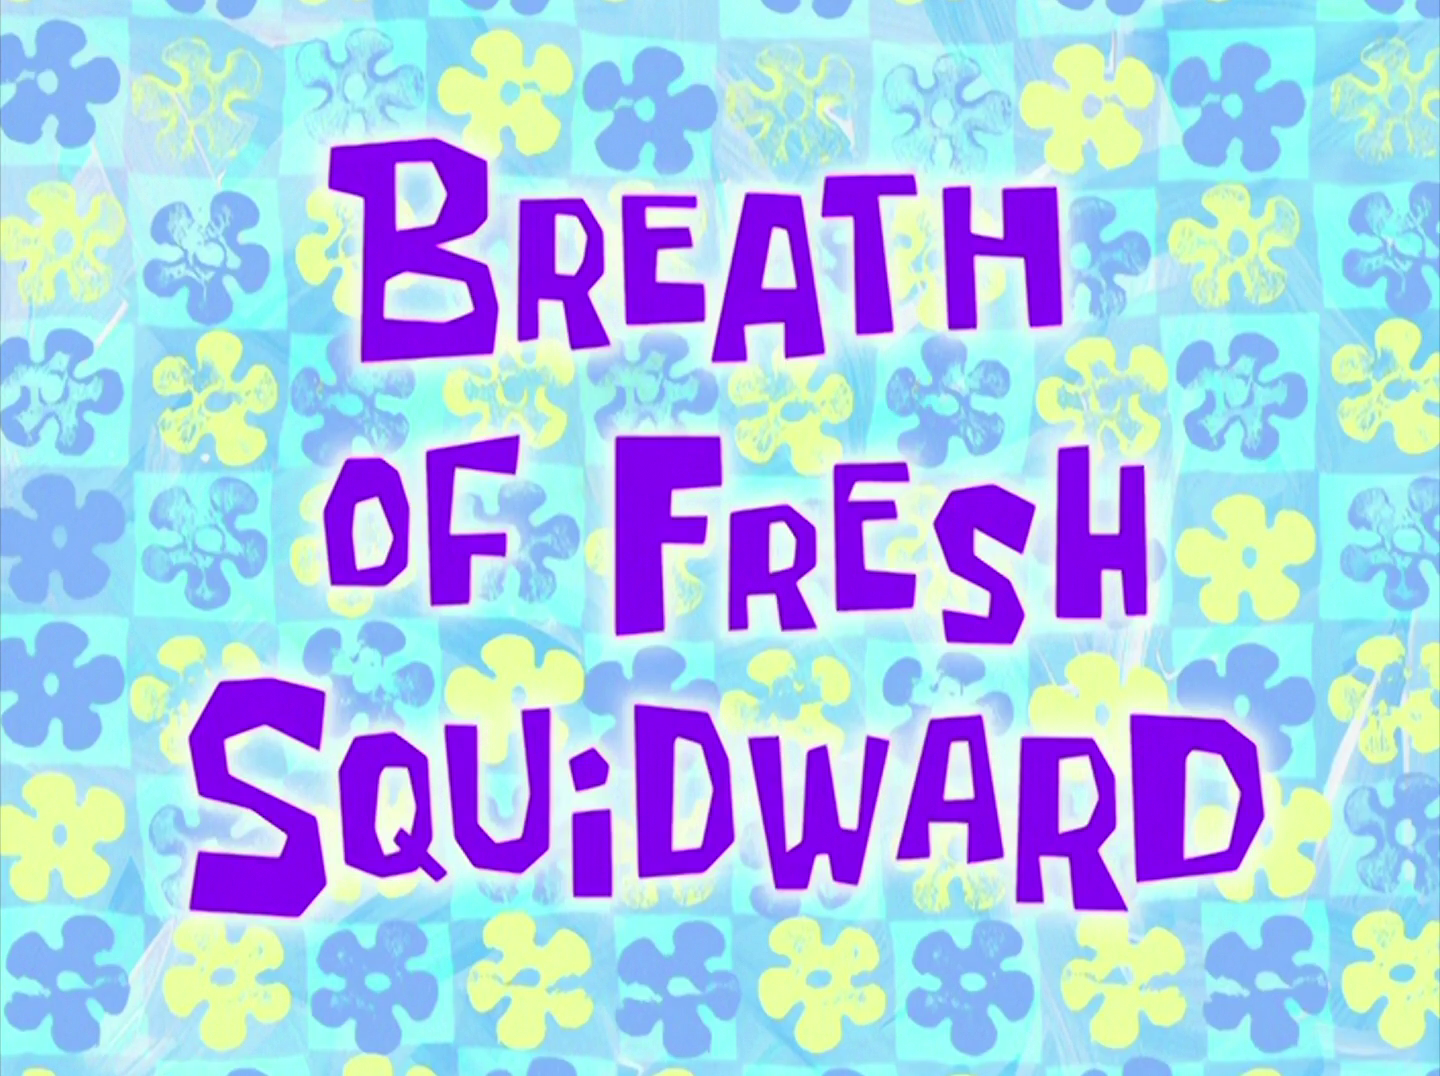 Breath of Fresh Squidward/transcript